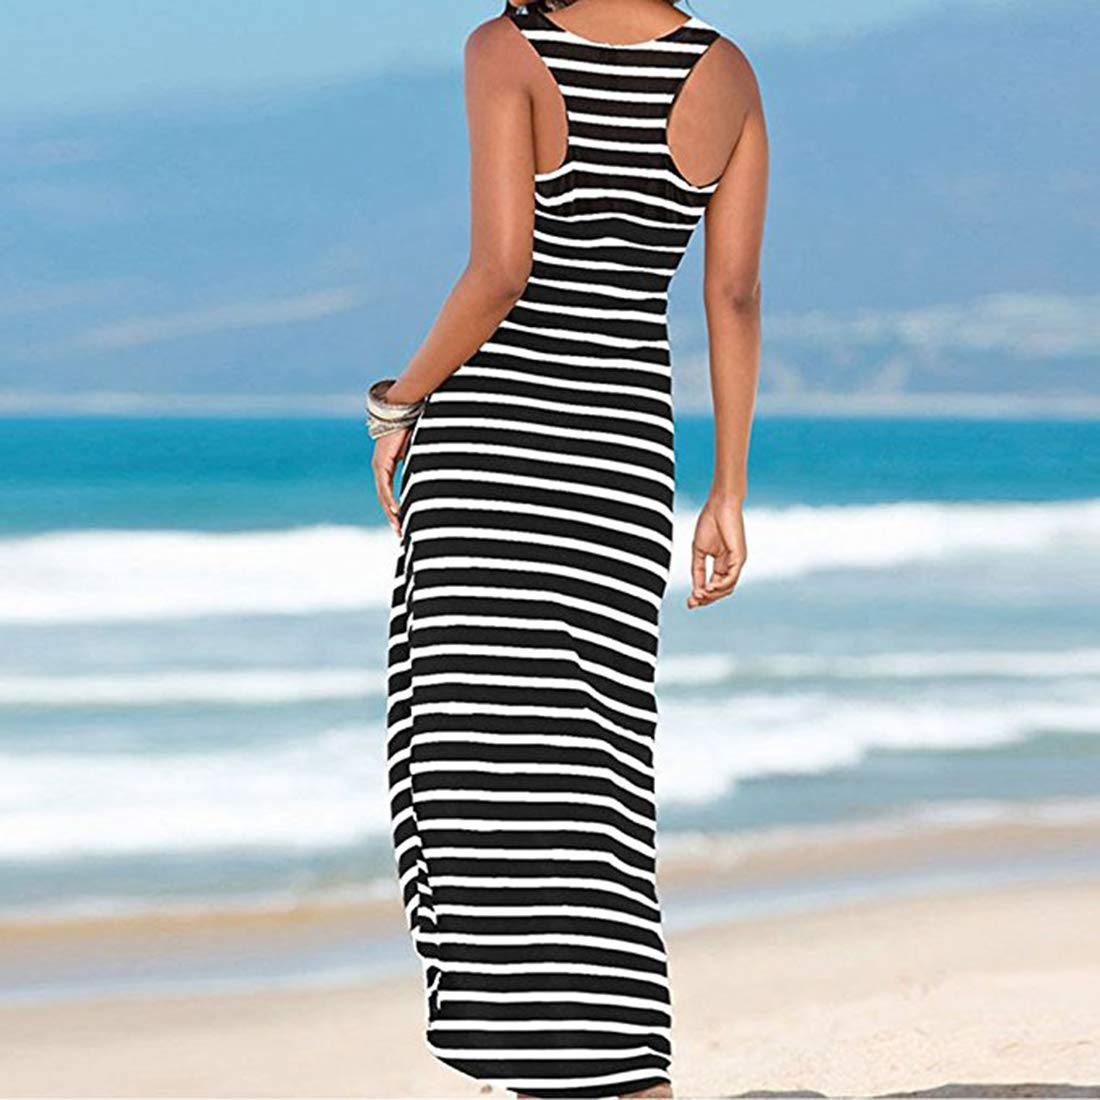 WESIDOM Maxi Dress for Women,Striped Sexy Sleeveless O-Neck Ankle-Length Casual Sundress, Party Long Dresses for Women Black by WESIDOM (Image #2)